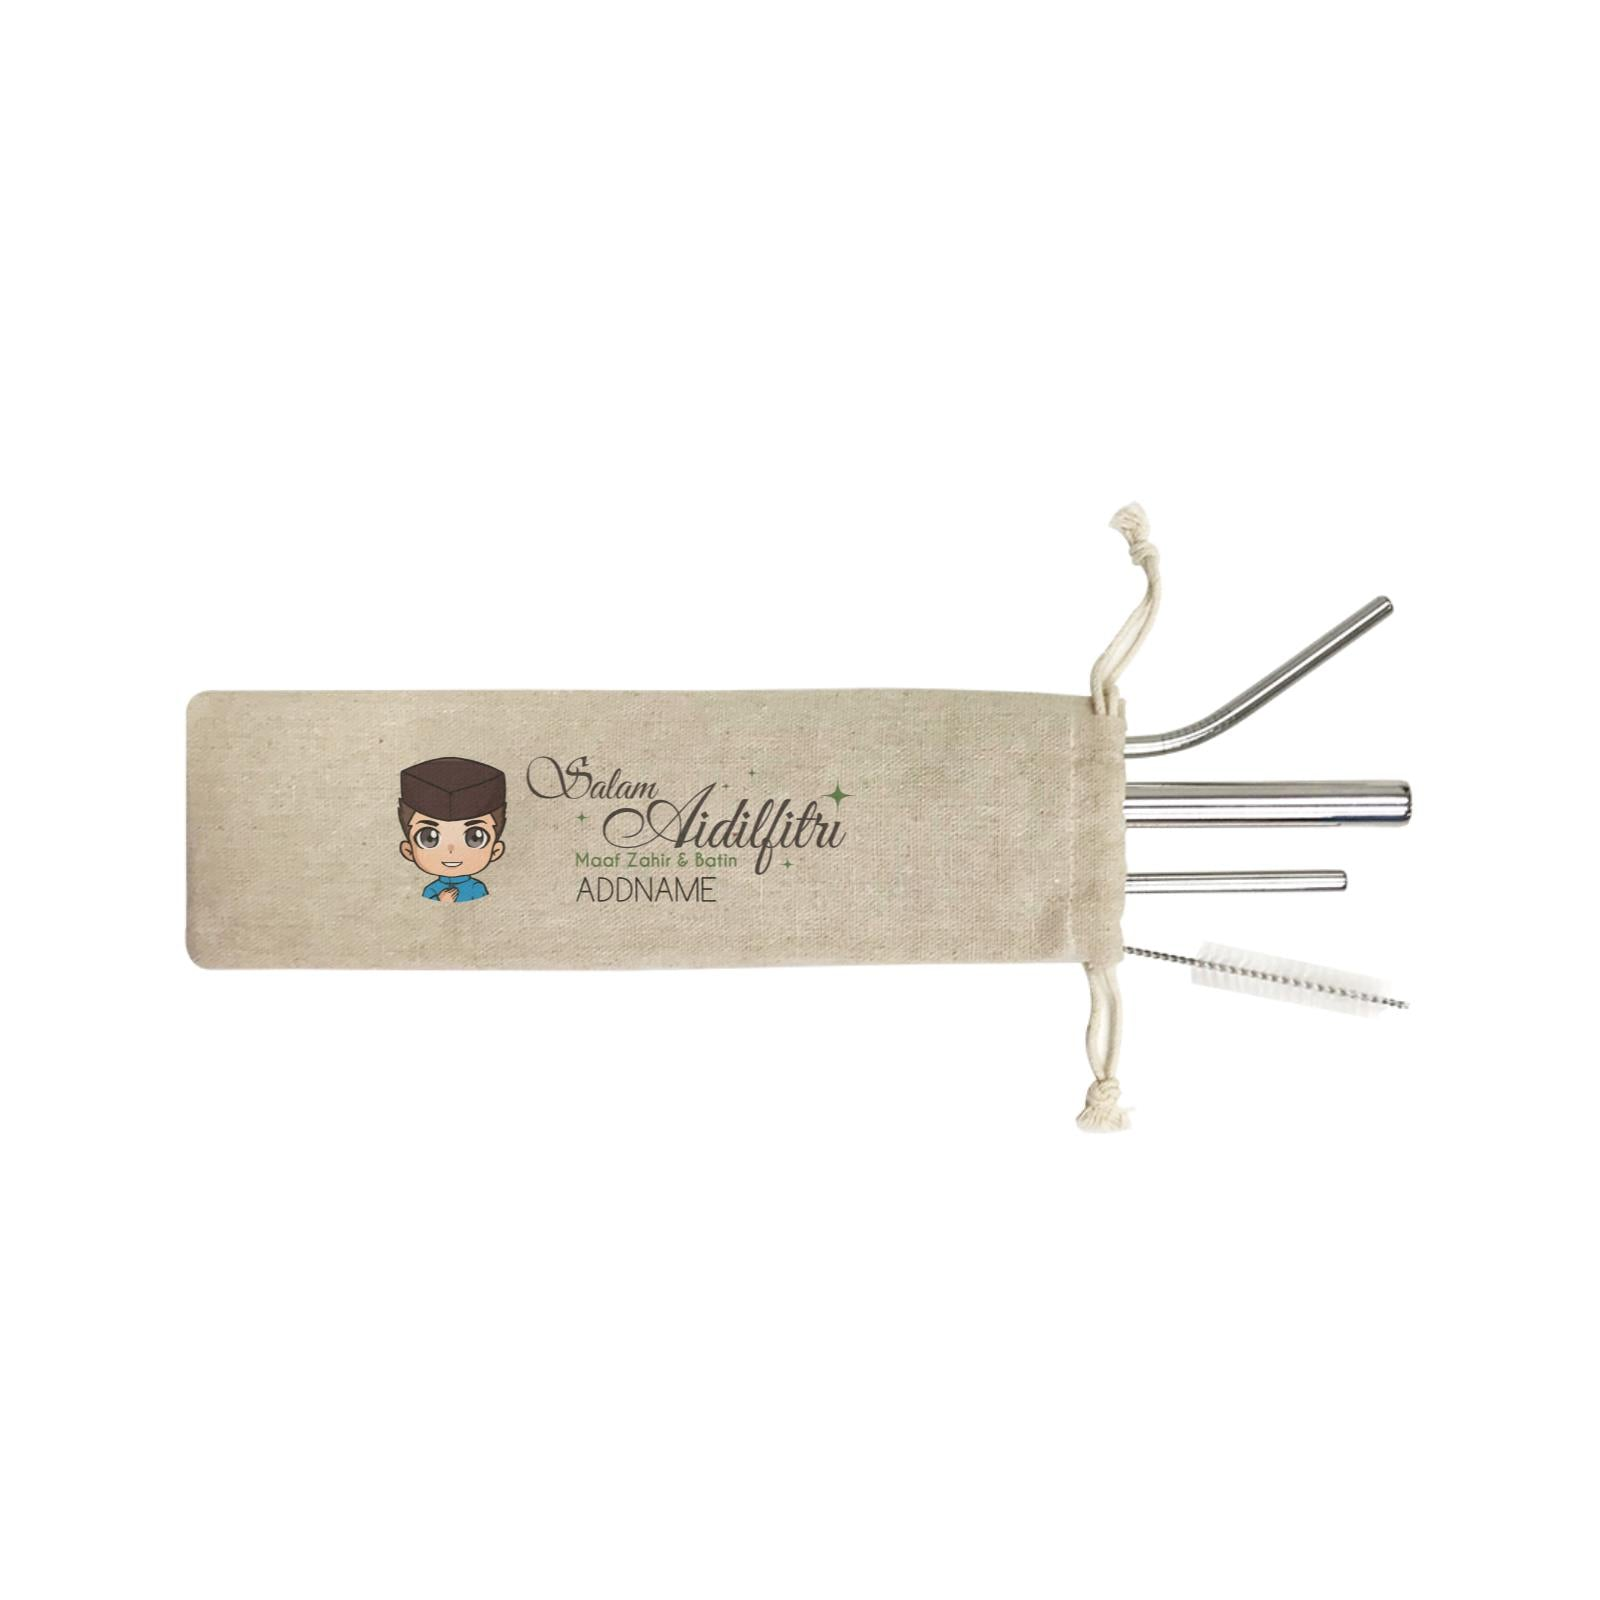 Raya Chibi Wishes Man Addname Wishes Everyone Salam Aidilfitri Maaf Zahir & Batin SB 4-In-1 Stainless Steel Straw Set in Satchel